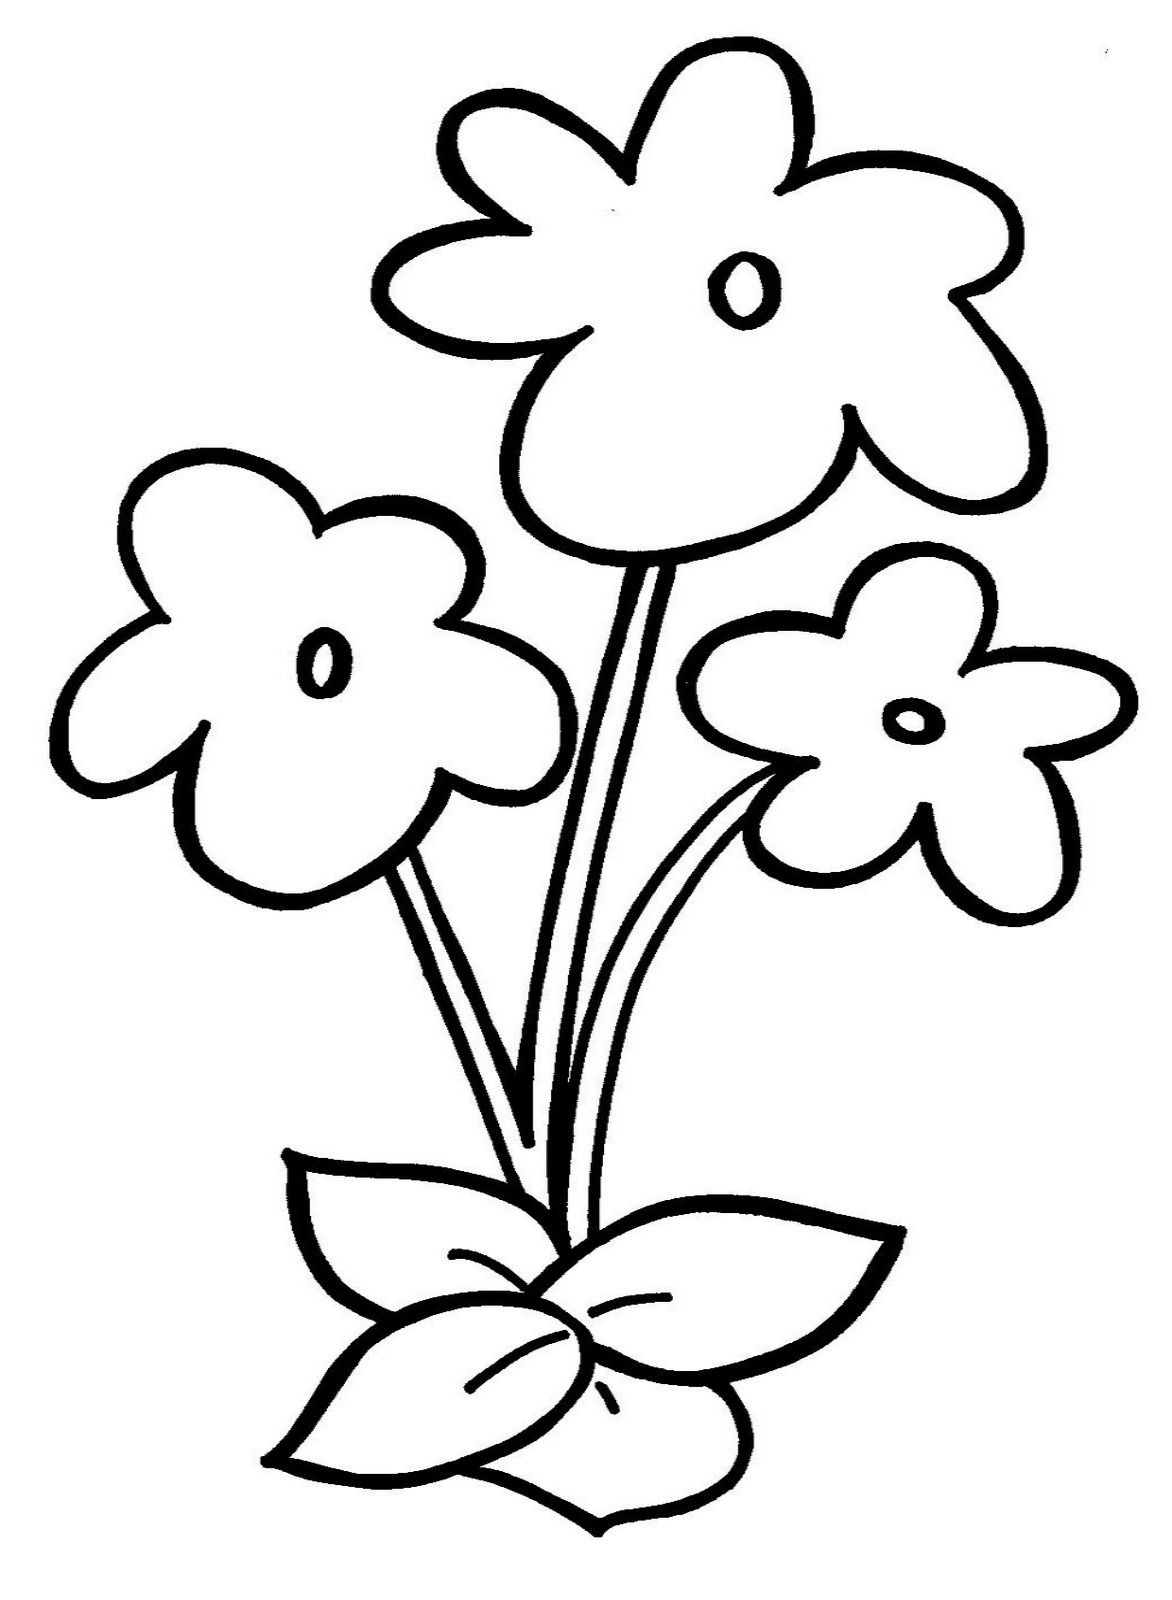 images of flowers to color pin by april ordoyne on flowers with images flower of images to flowers color